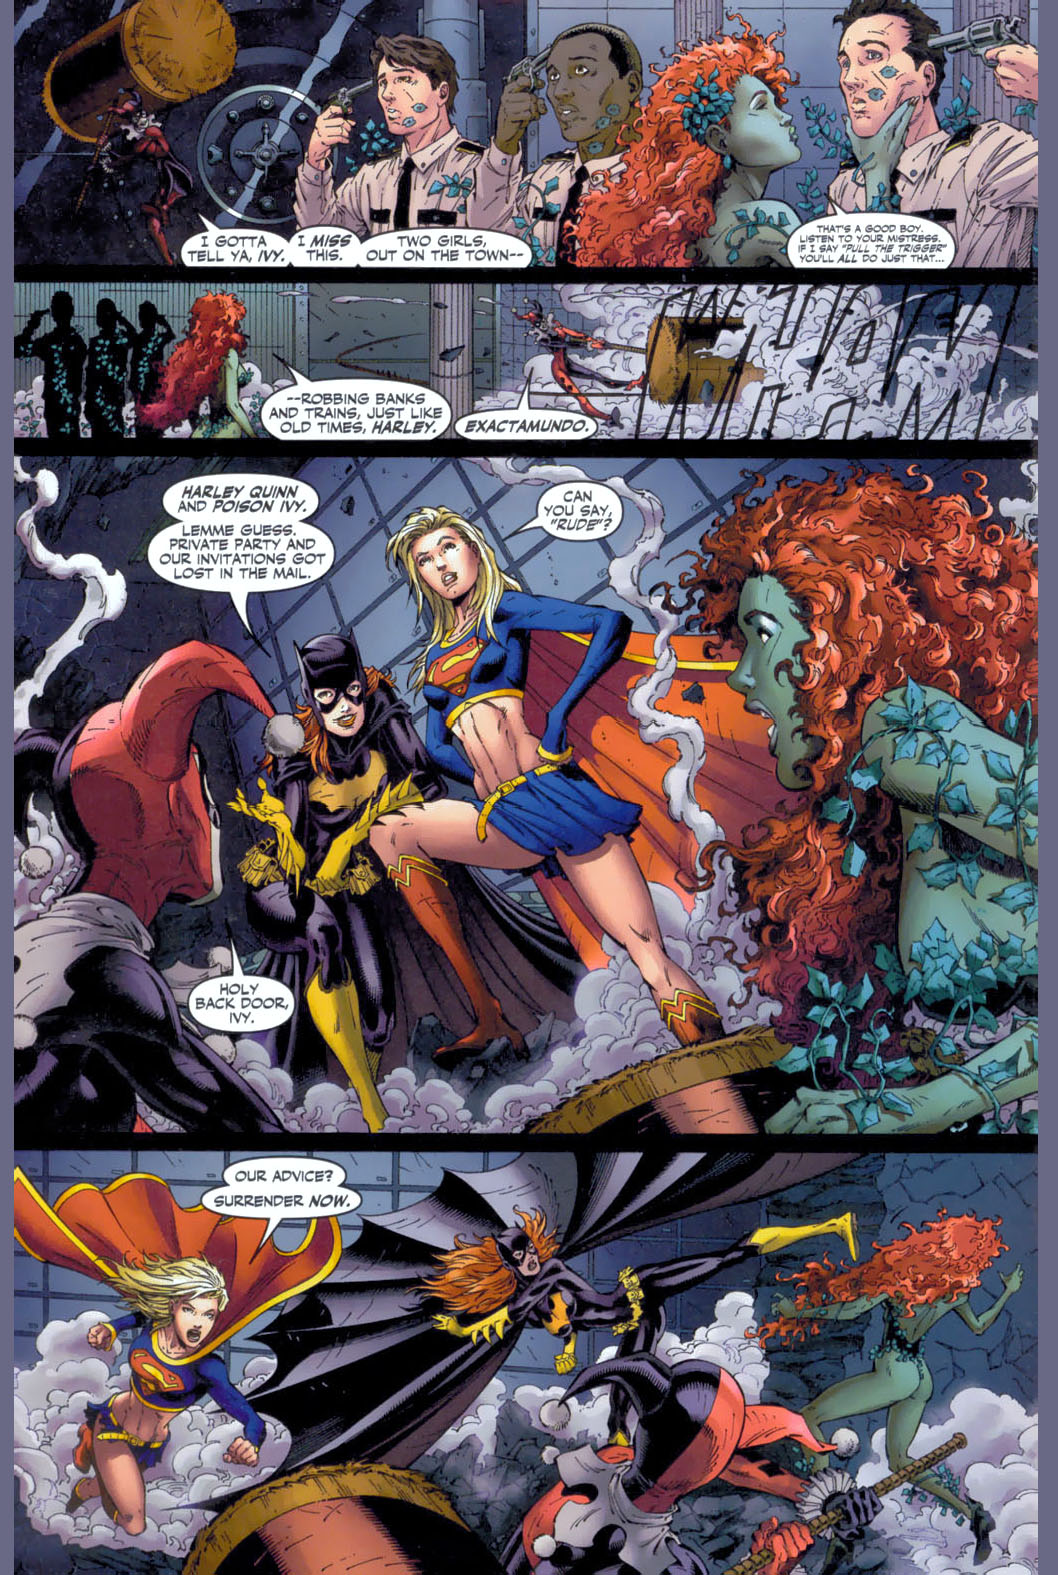 Supergirl And Batgirl Vs Harley Quinn And Poison Ivy Comicnewbies